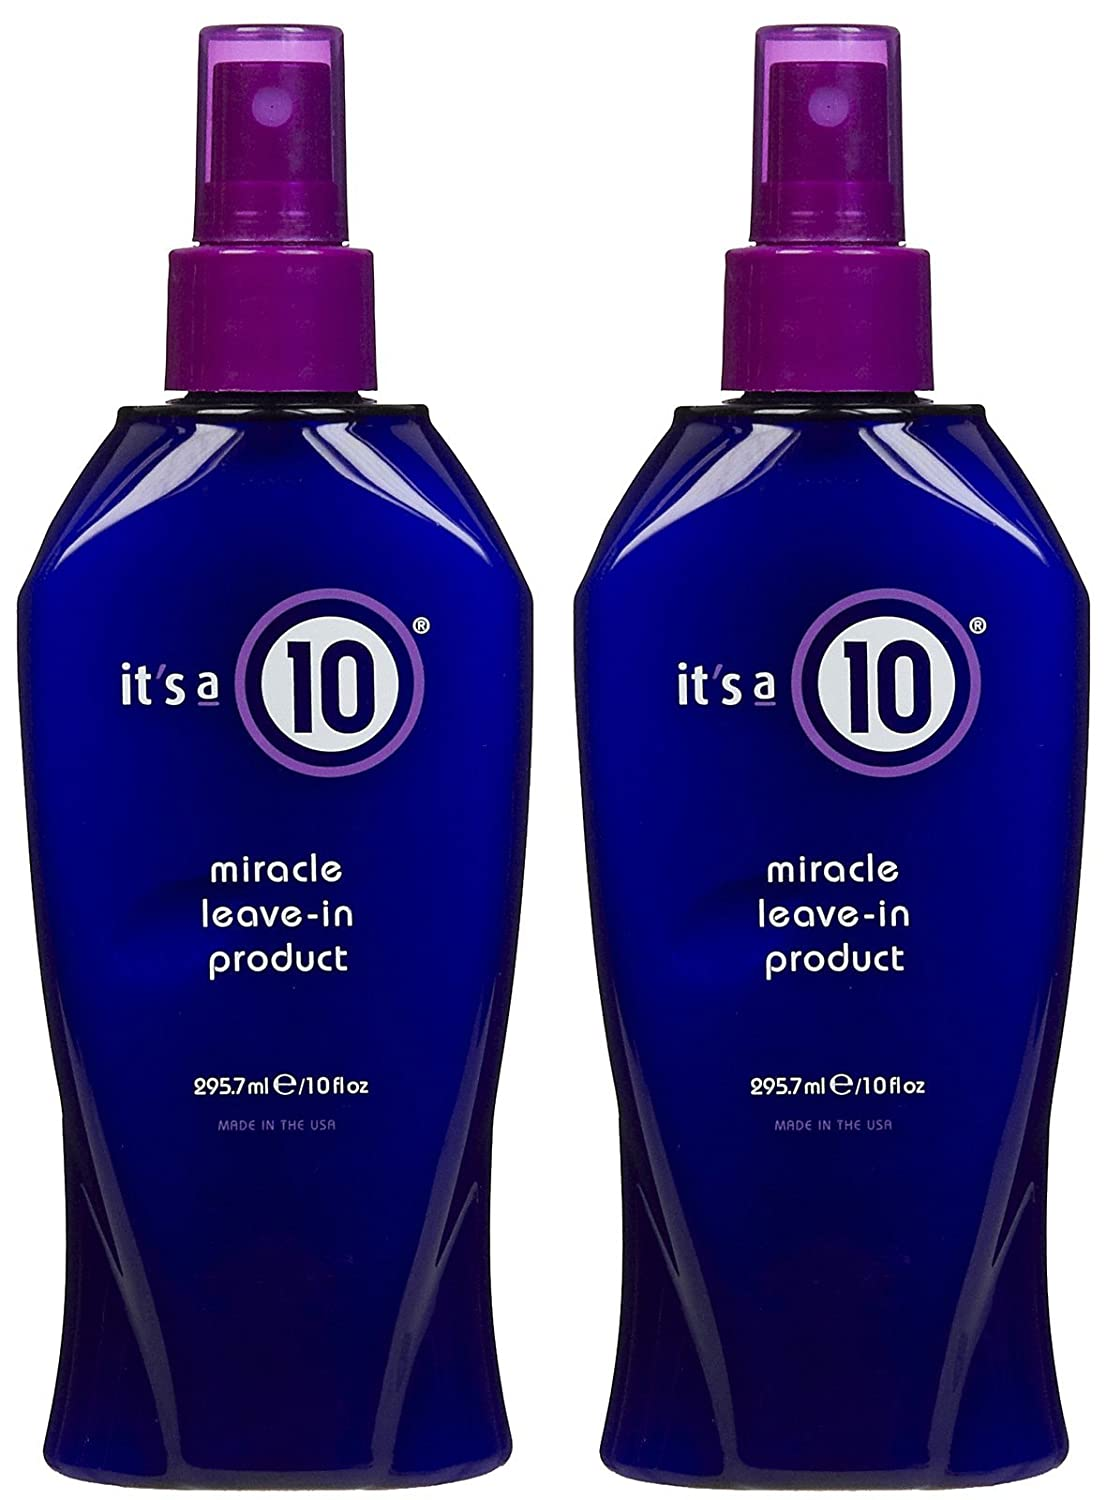 it's a 10 Miracle Leave-In product 10 oz (Pack of 2) Pro' s Choice Beauty Care